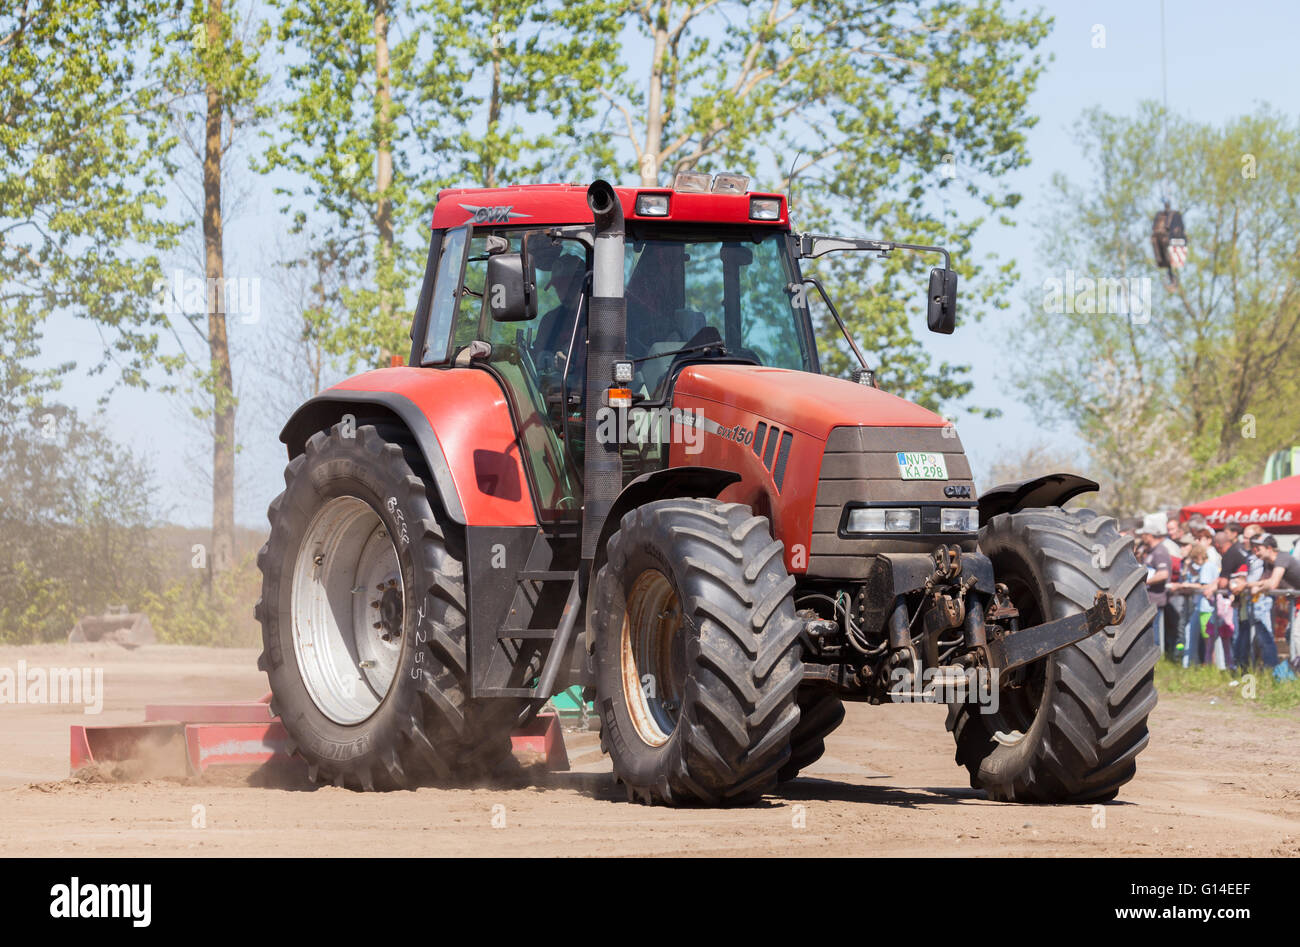 GRIMMEN/ GERMANY - MAY 5: german case puma cvx 150 tractor drives on track